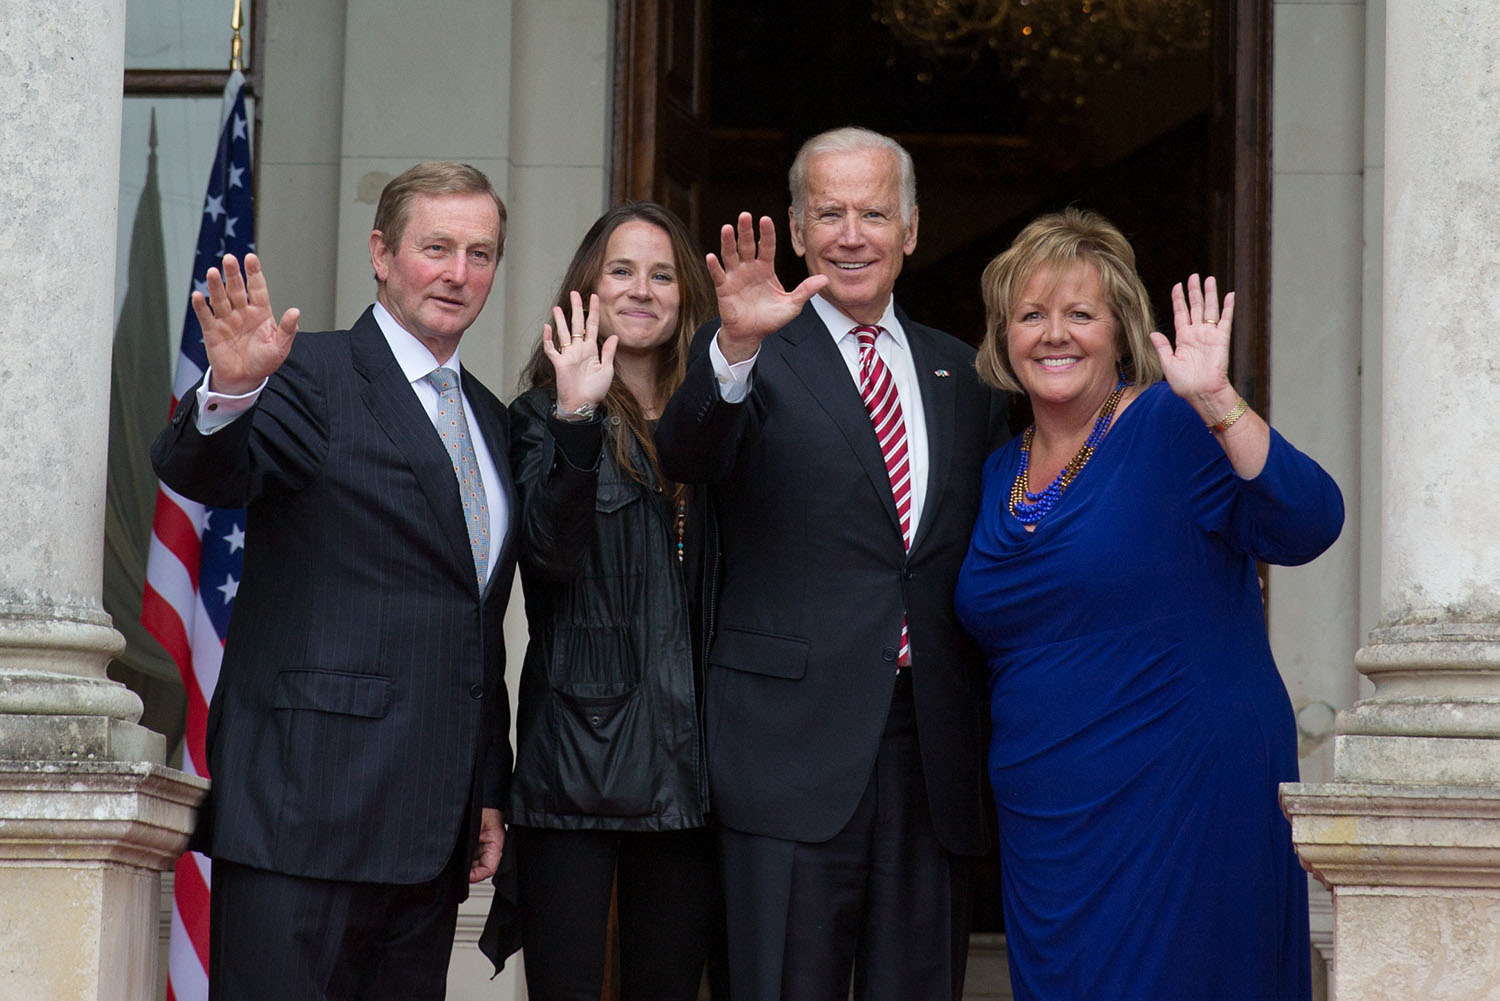 Taoiseach Enda Kenny, Ashley Biden, Vice President Joe Biden, and Mrs. Fionnuala O'Kelly wave to the press after a luncheon at hosted by the Taoiseach at Farmleigh House, in Dublin, Ireland, June 26, 2016. (Official White House Photo by David Lienemann)